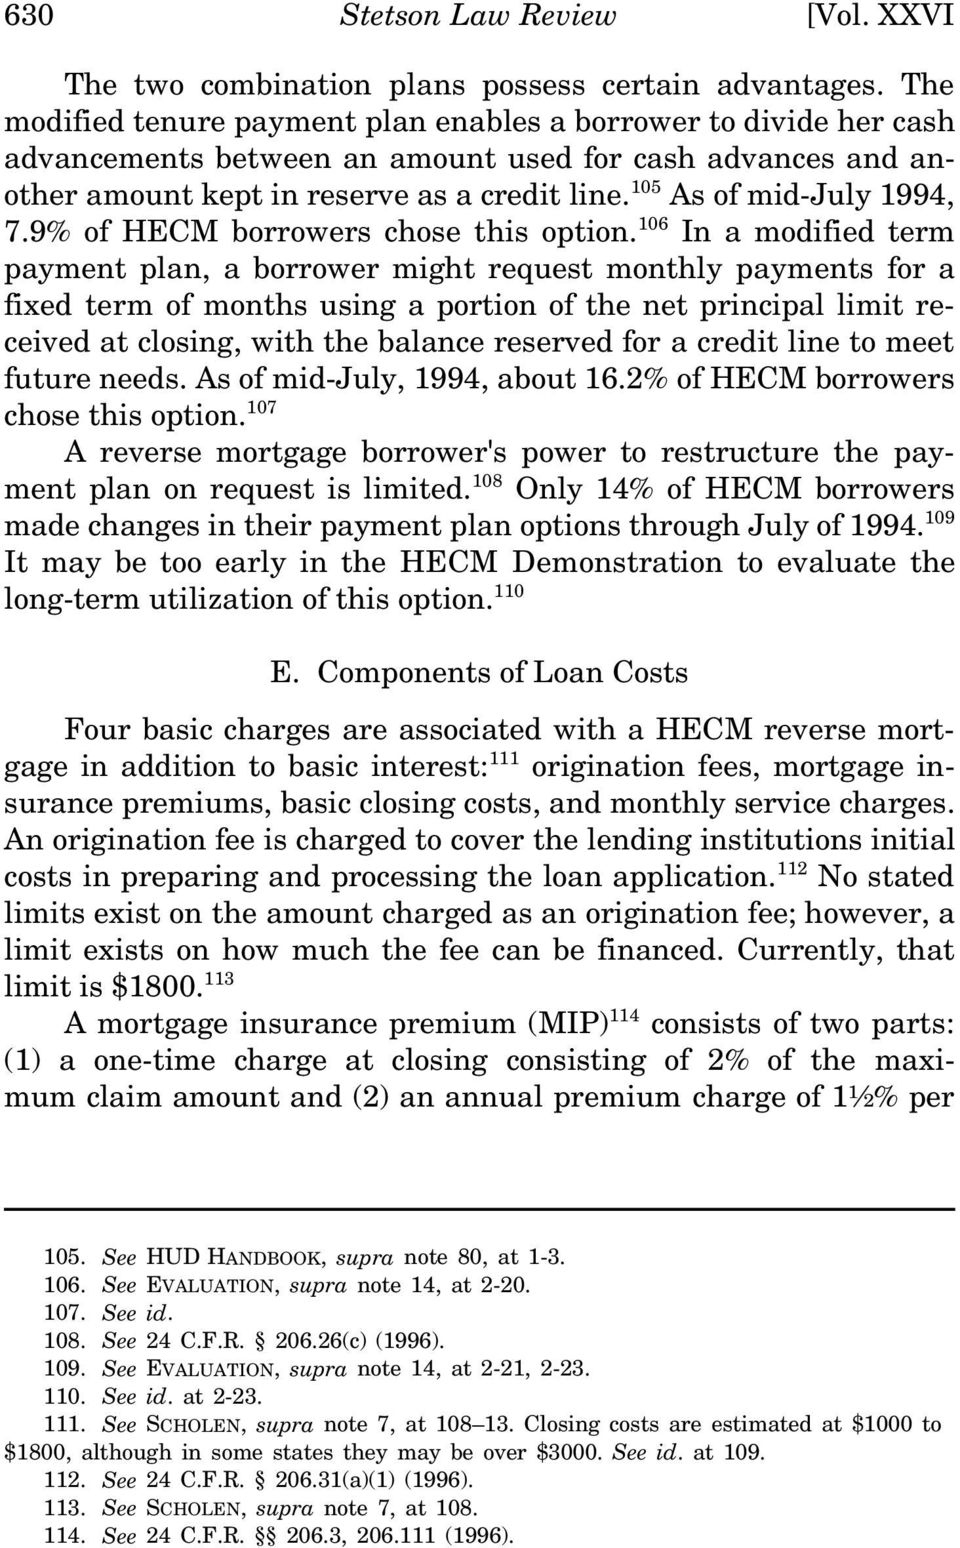 105 As of mid-july 1994, 7.9% of HECM borrowers chose this option.